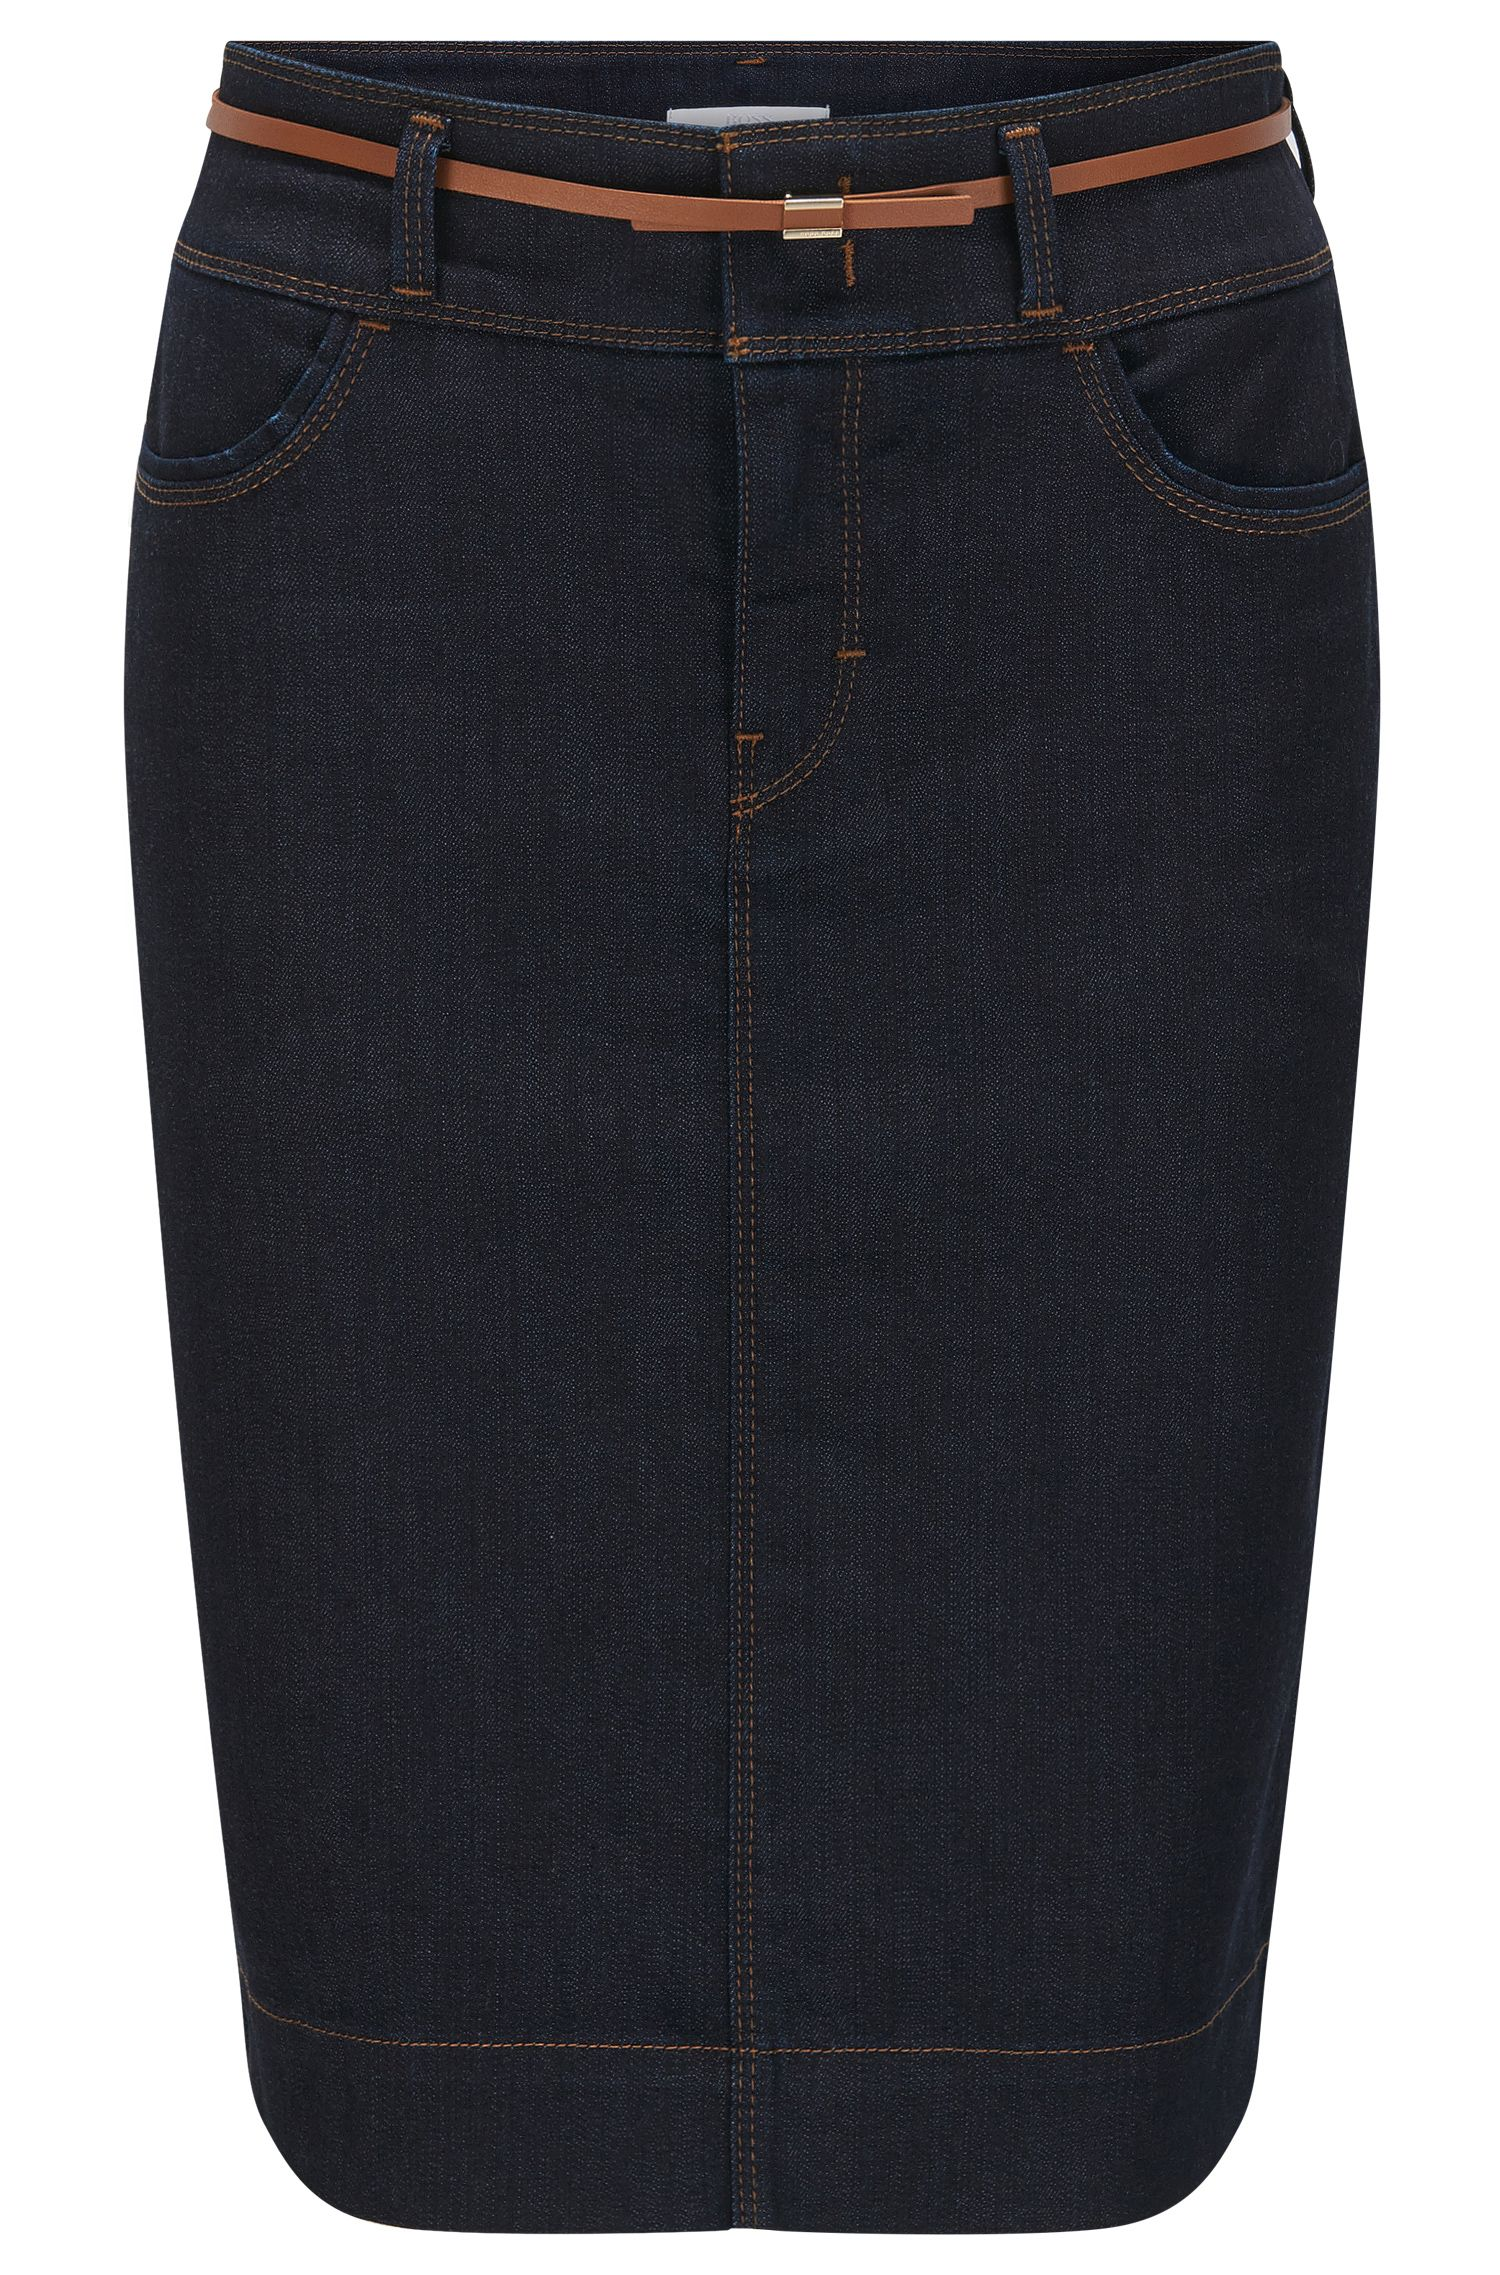 Pencil skirt in comfort-stretch denim